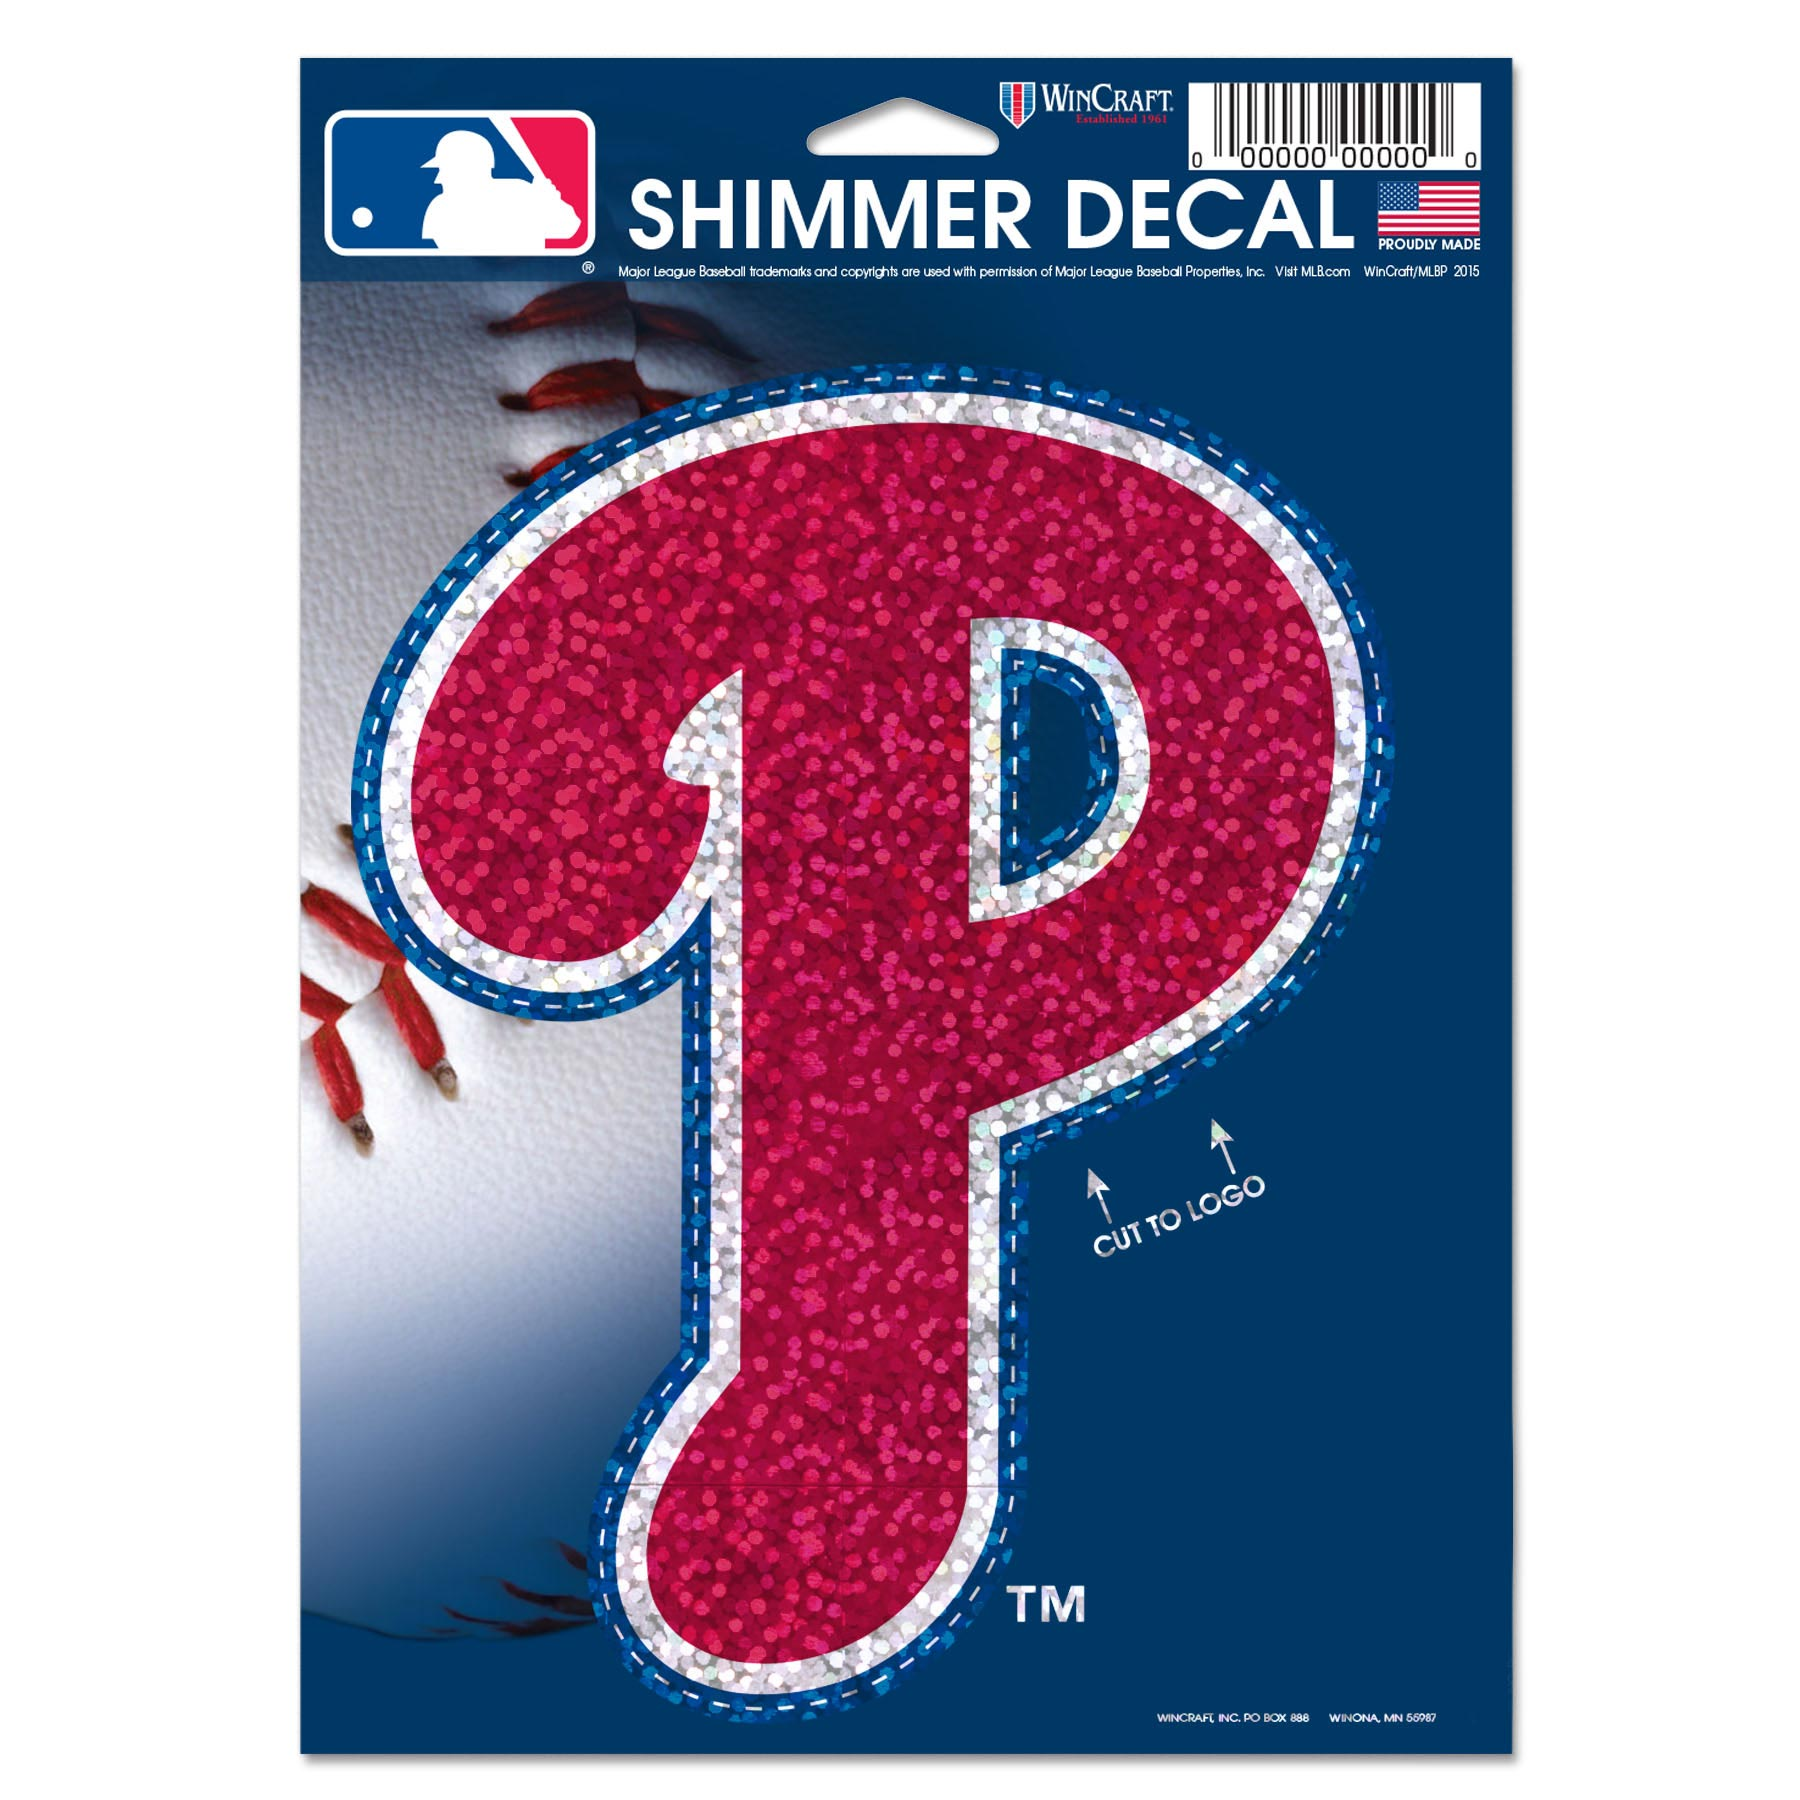 """Philadelphia Phillies WinCraft 5"""" x 7"""" Shimmer Decal - No Size"""